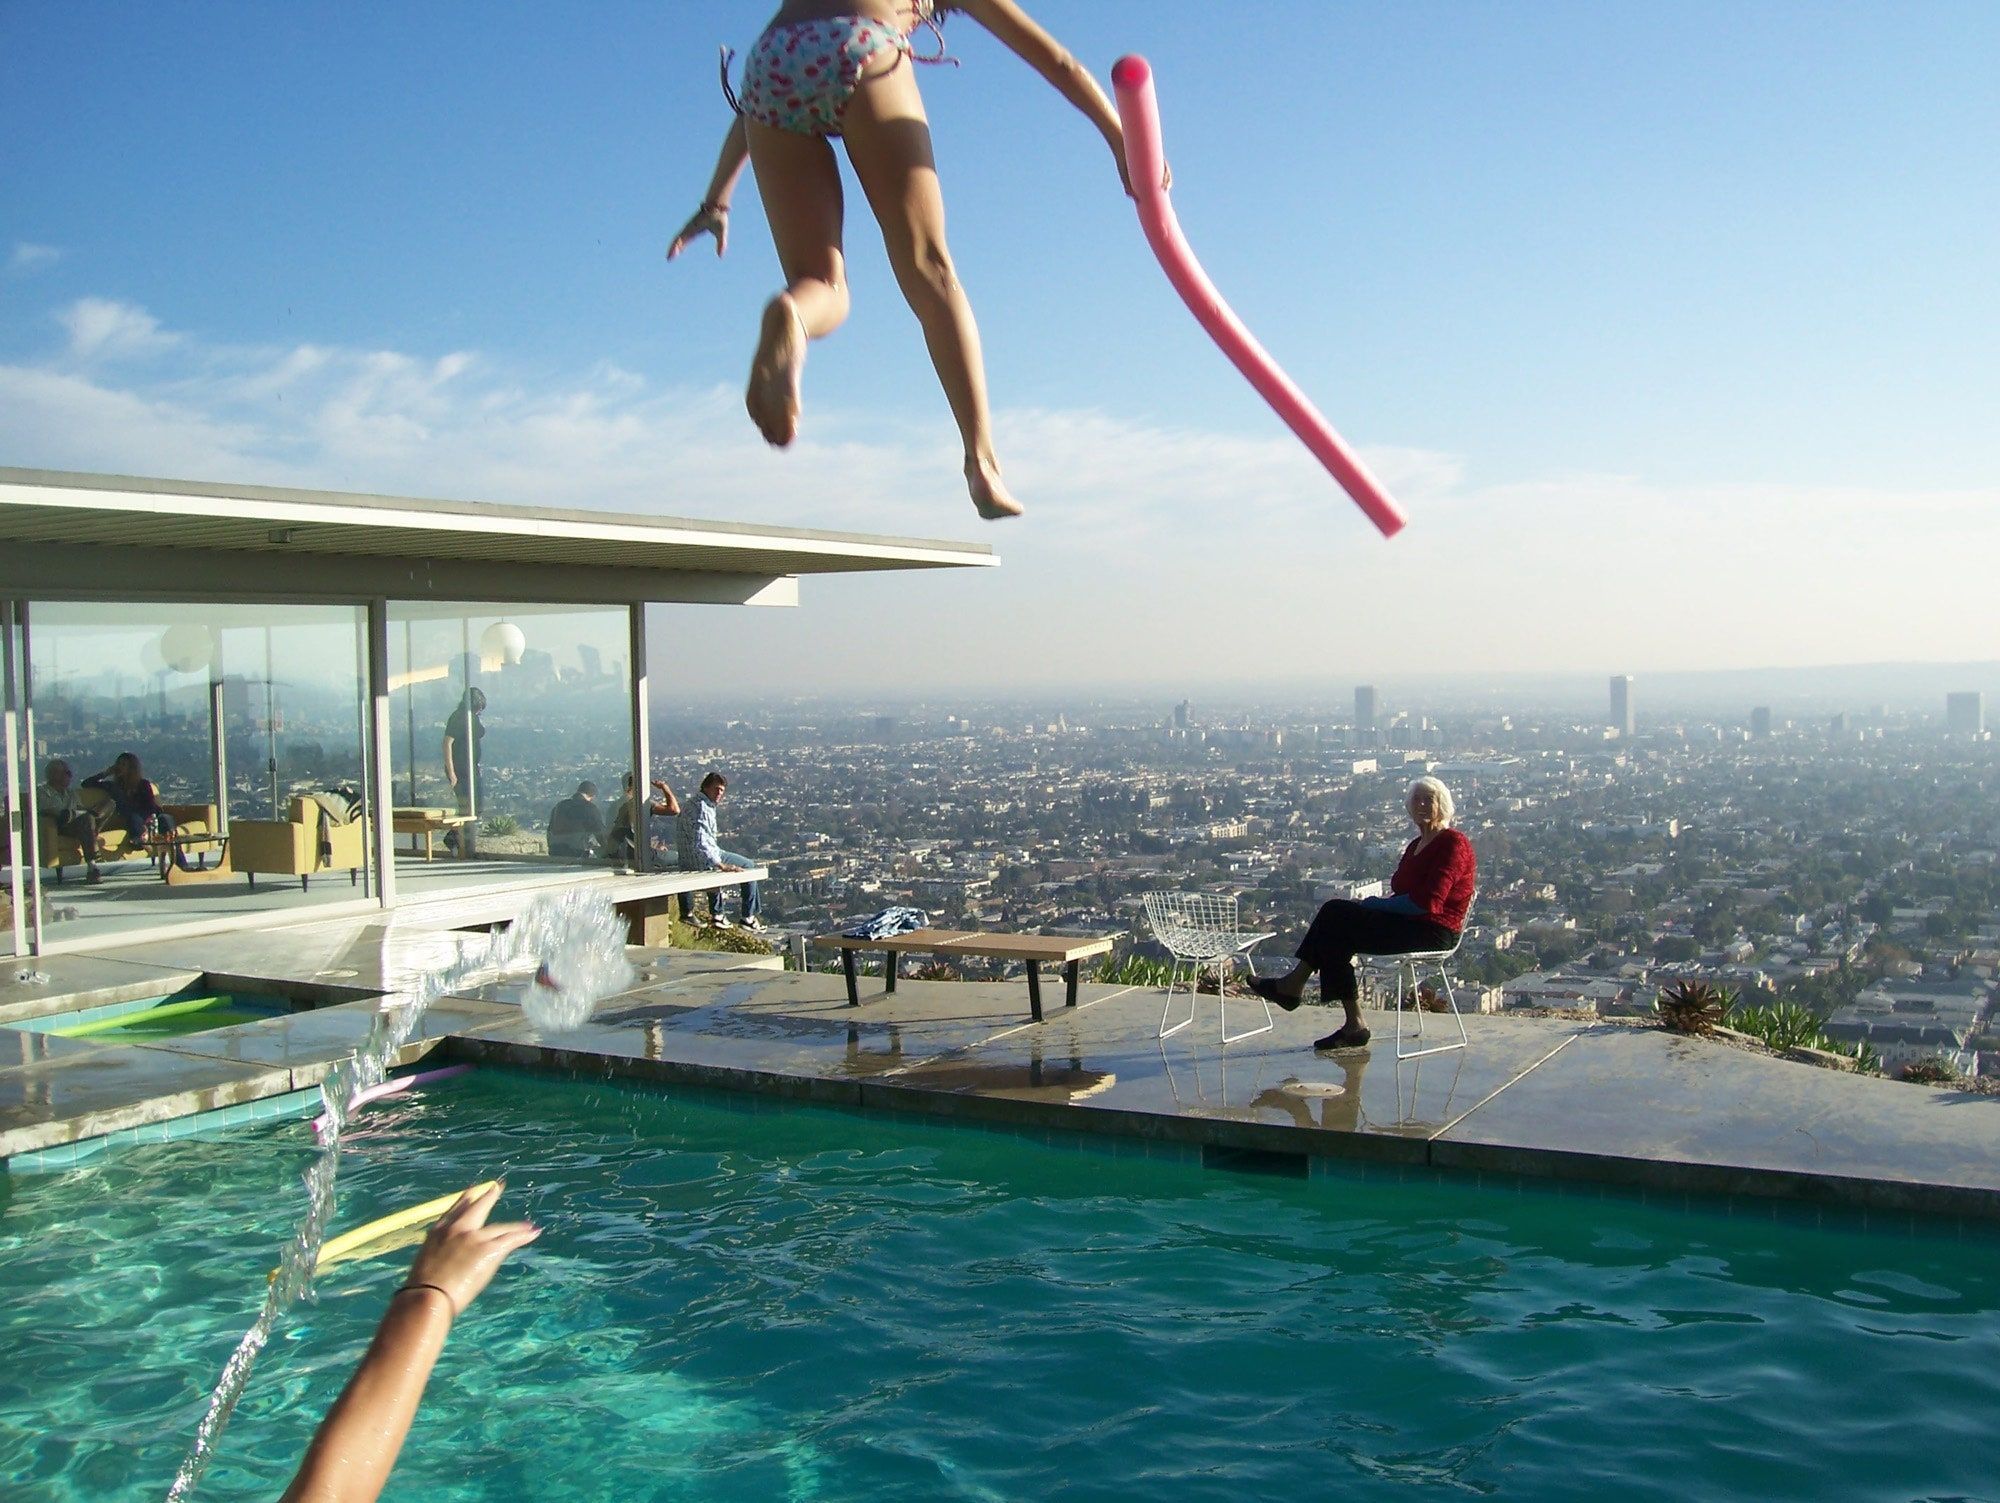 Carlotta Stahl and her son Bruce watch his daughter Sara jump off the roof of the house into the pool, July 2009. Courtesy Stahl Family Archive.